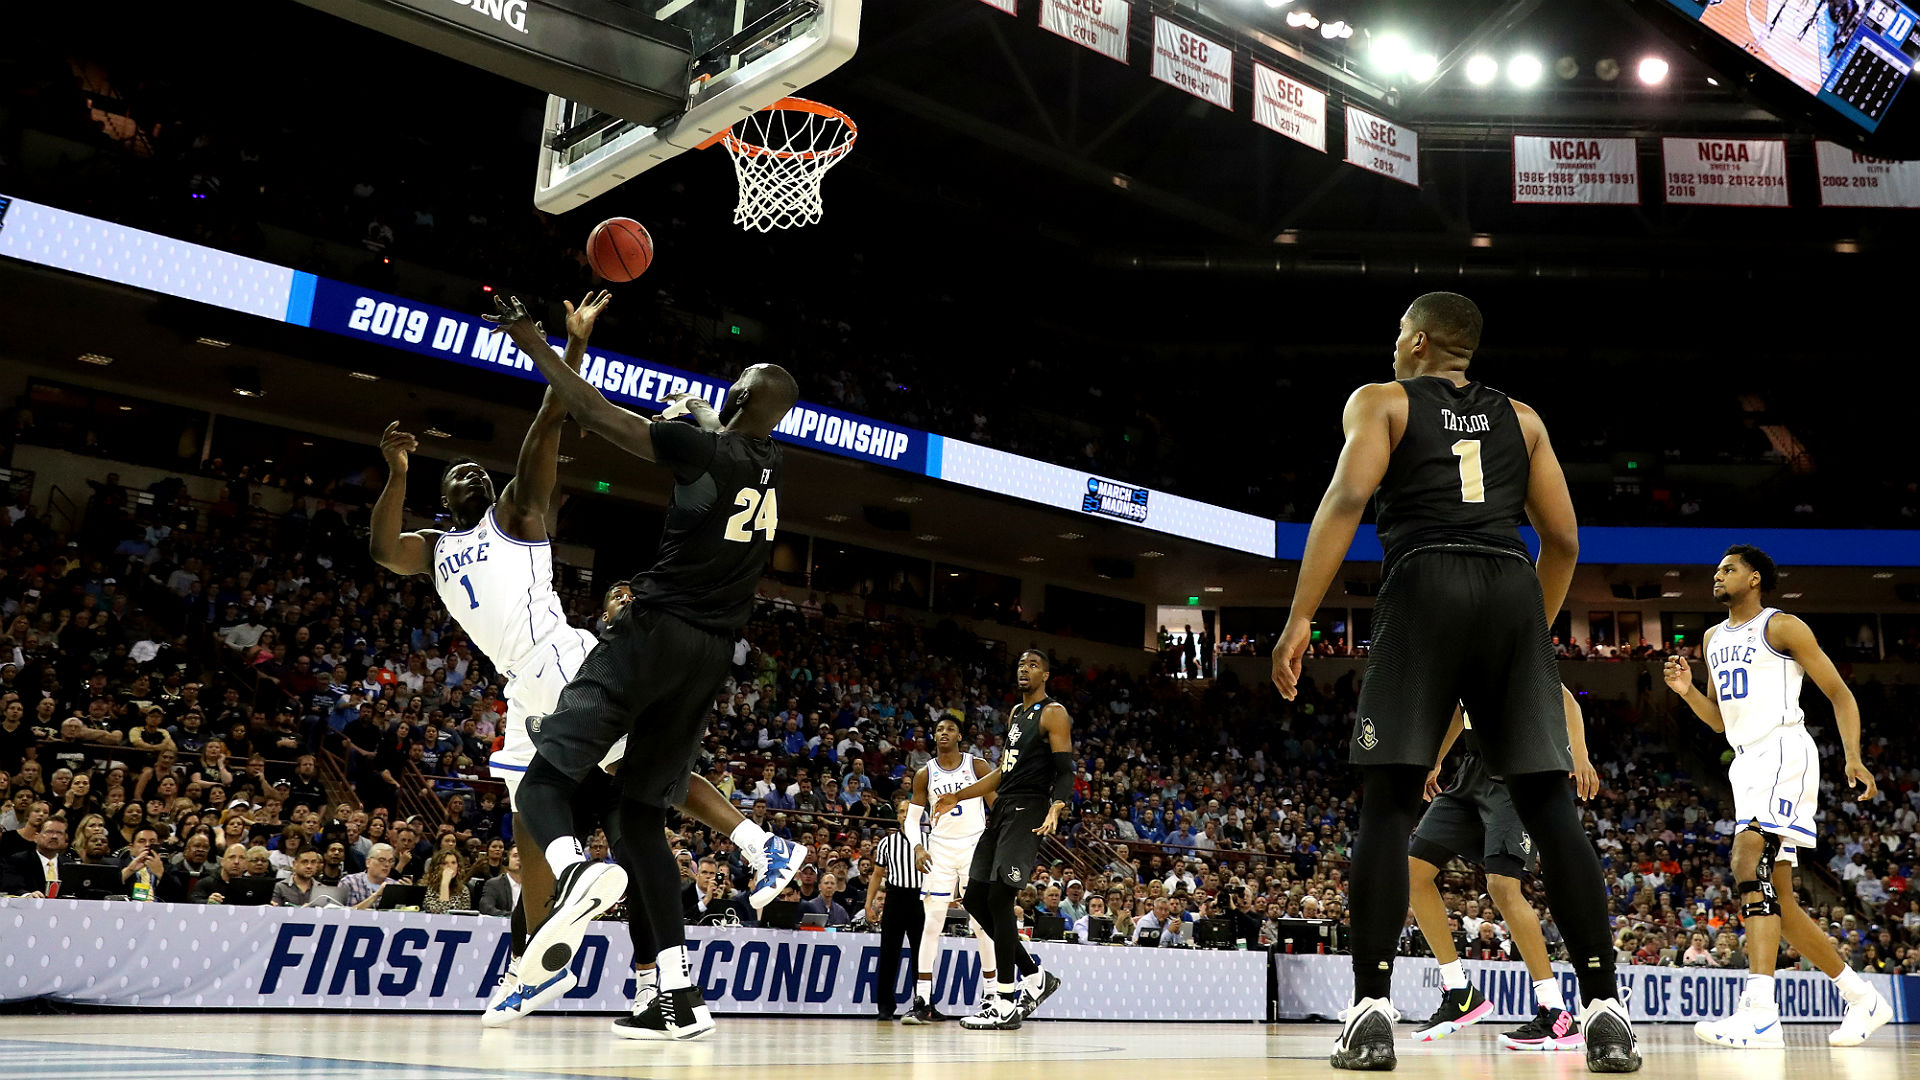 March Madness 2019 Zion Williamson Throws Down Multiple: March Madness: Zion Williamson Discusses Win Over UCF